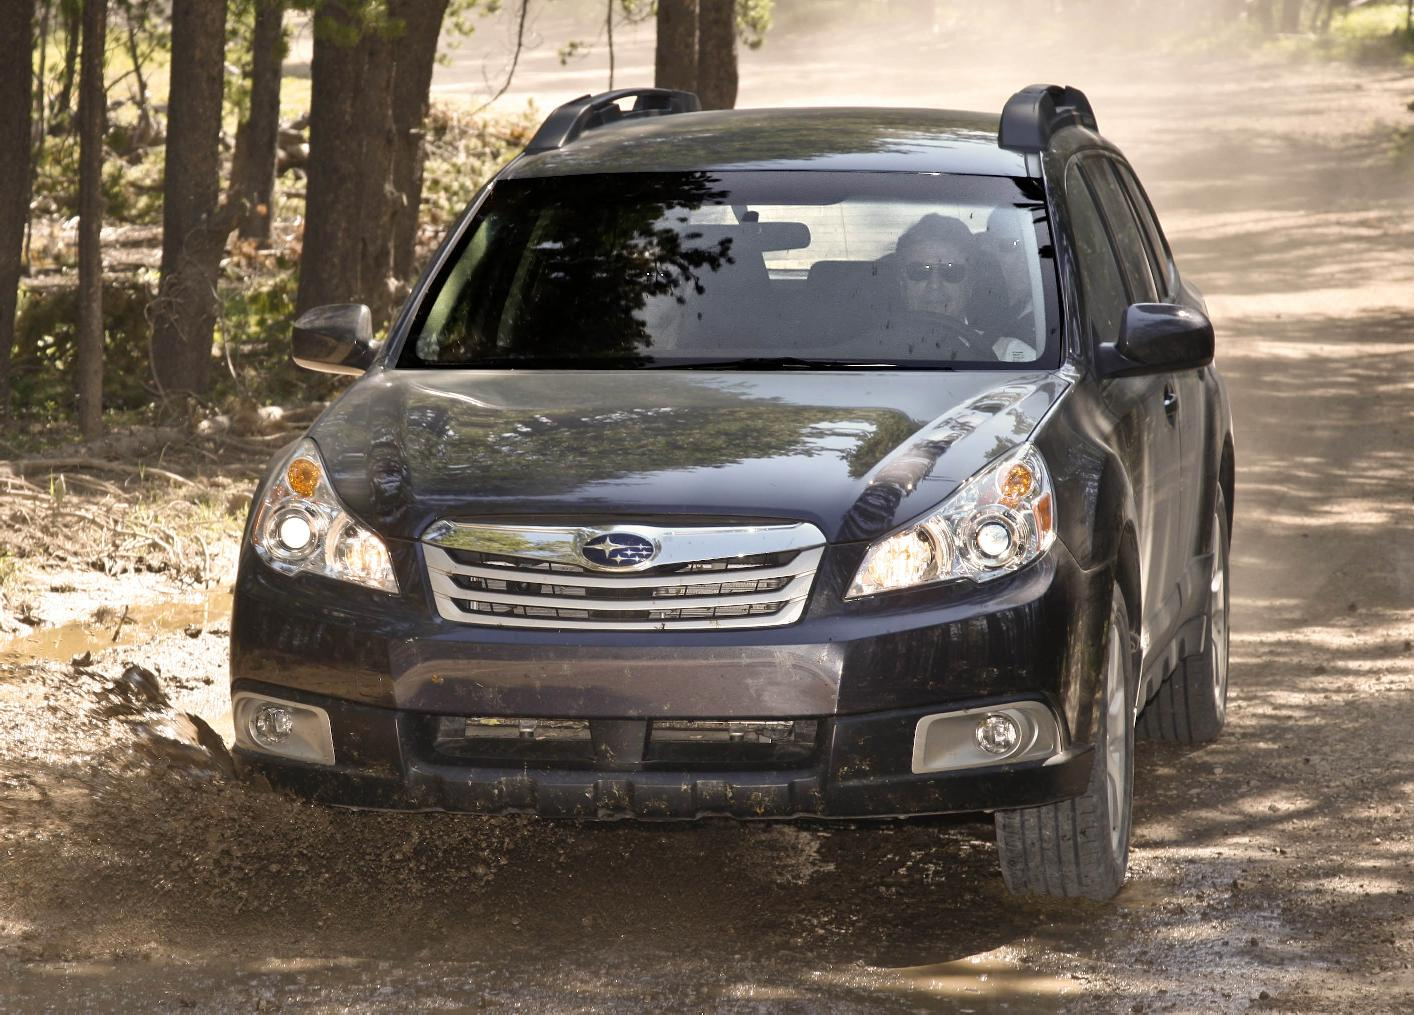 2010 subaru outback safety review and crash test ratings. Black Bedroom Furniture Sets. Home Design Ideas